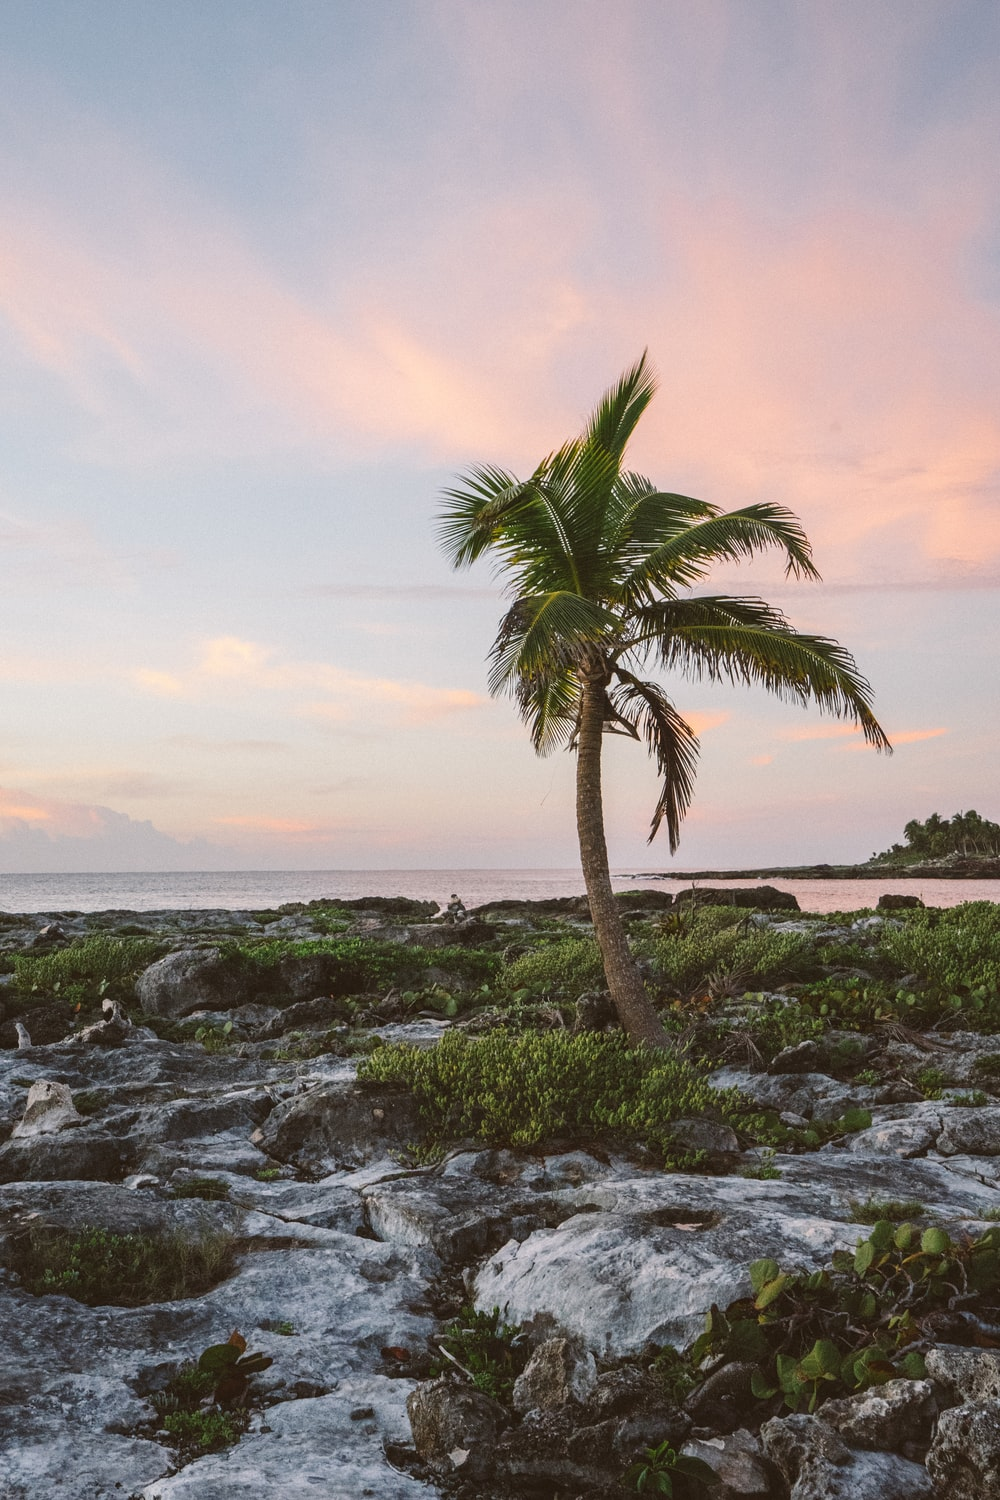 coconut tree near body of water during daytime